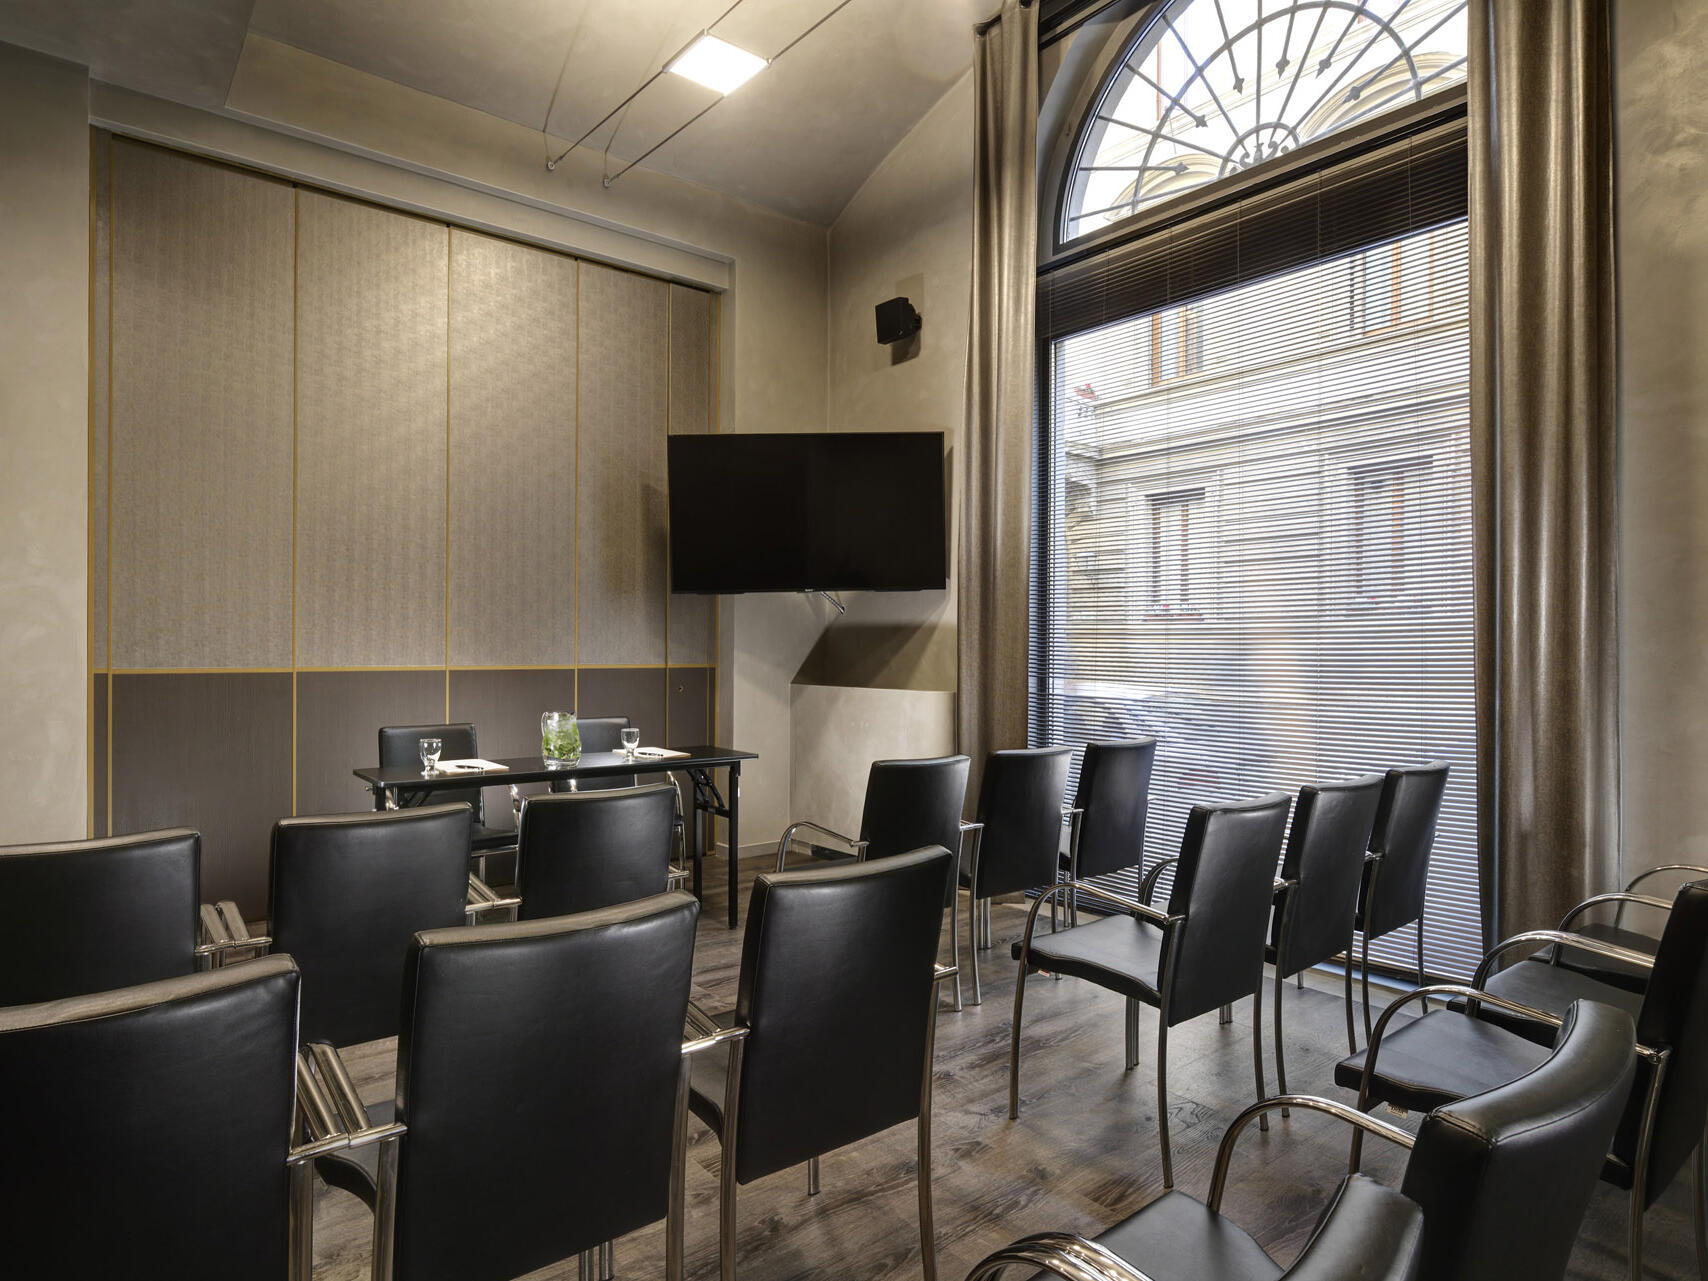 A Meeting room with city view window at Grand Hotel Minerva